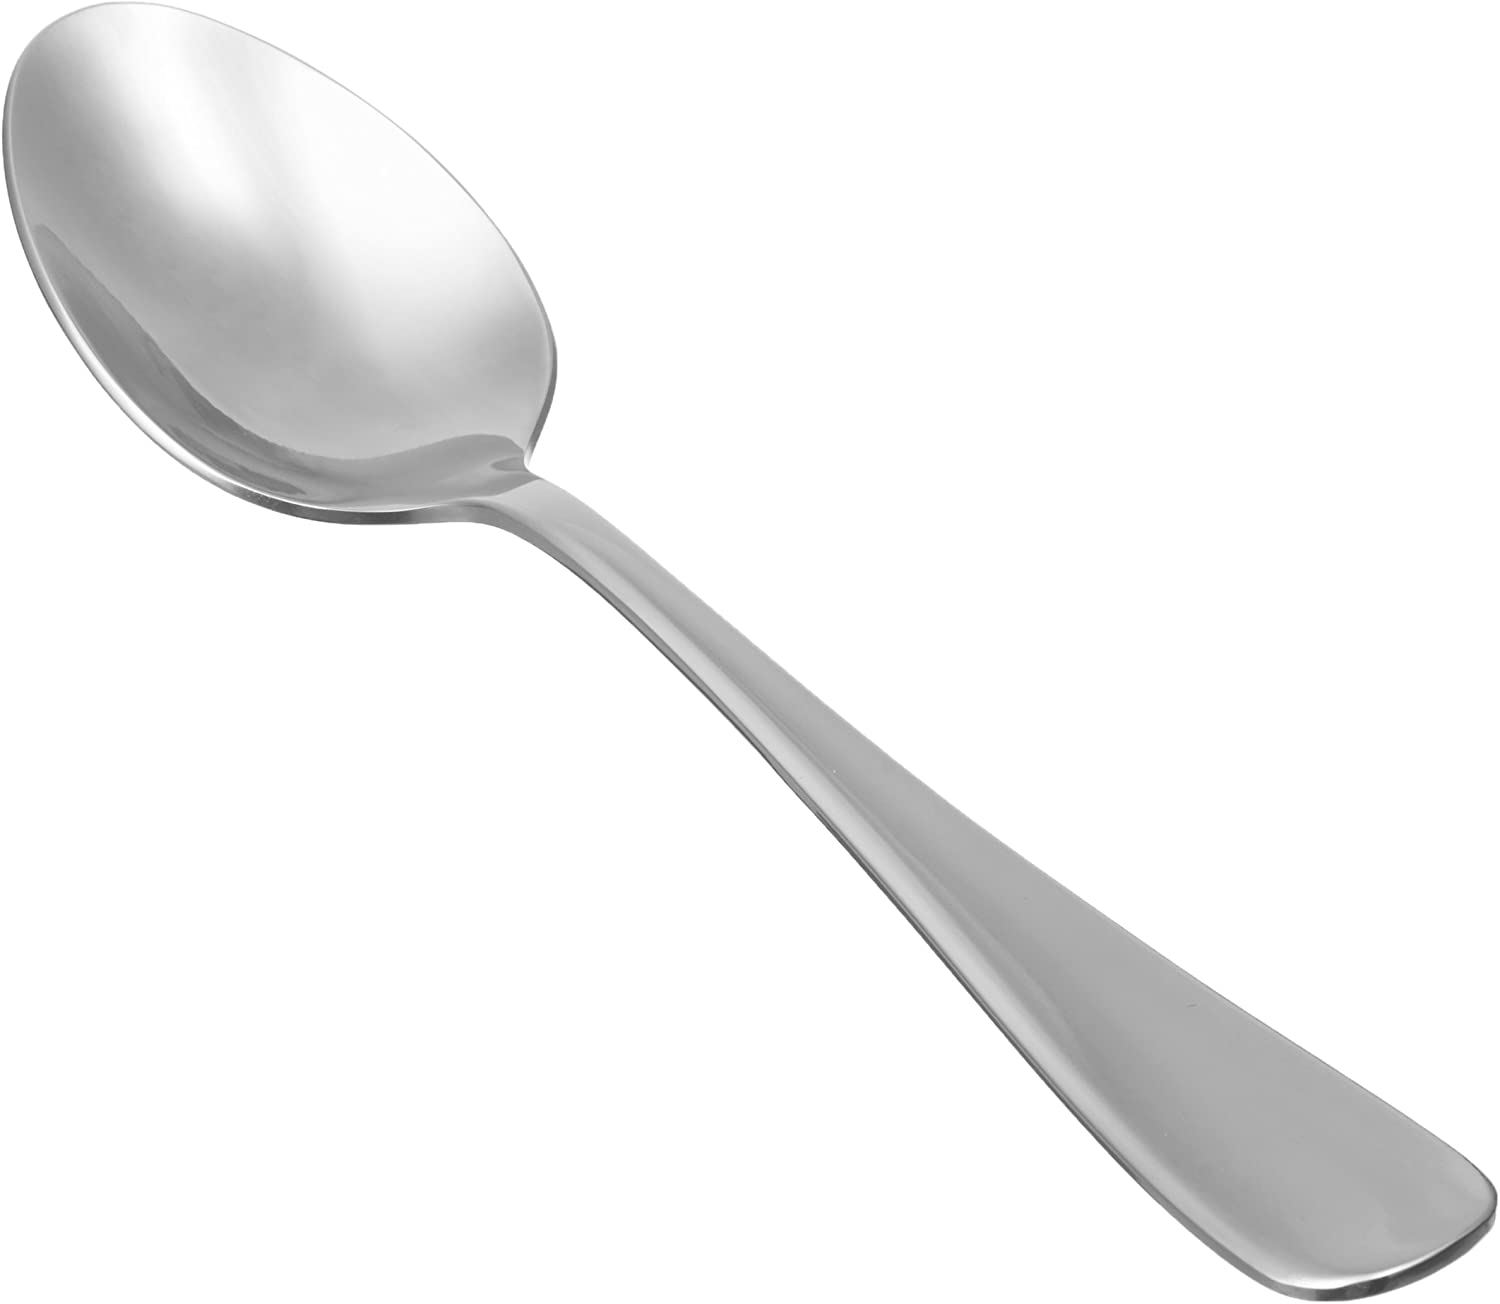 USA SELLER  12 PRIMA TEASPOONS  HEAVY WEIGHT 18//0 S//S FREE SHIPPING USA ONLY